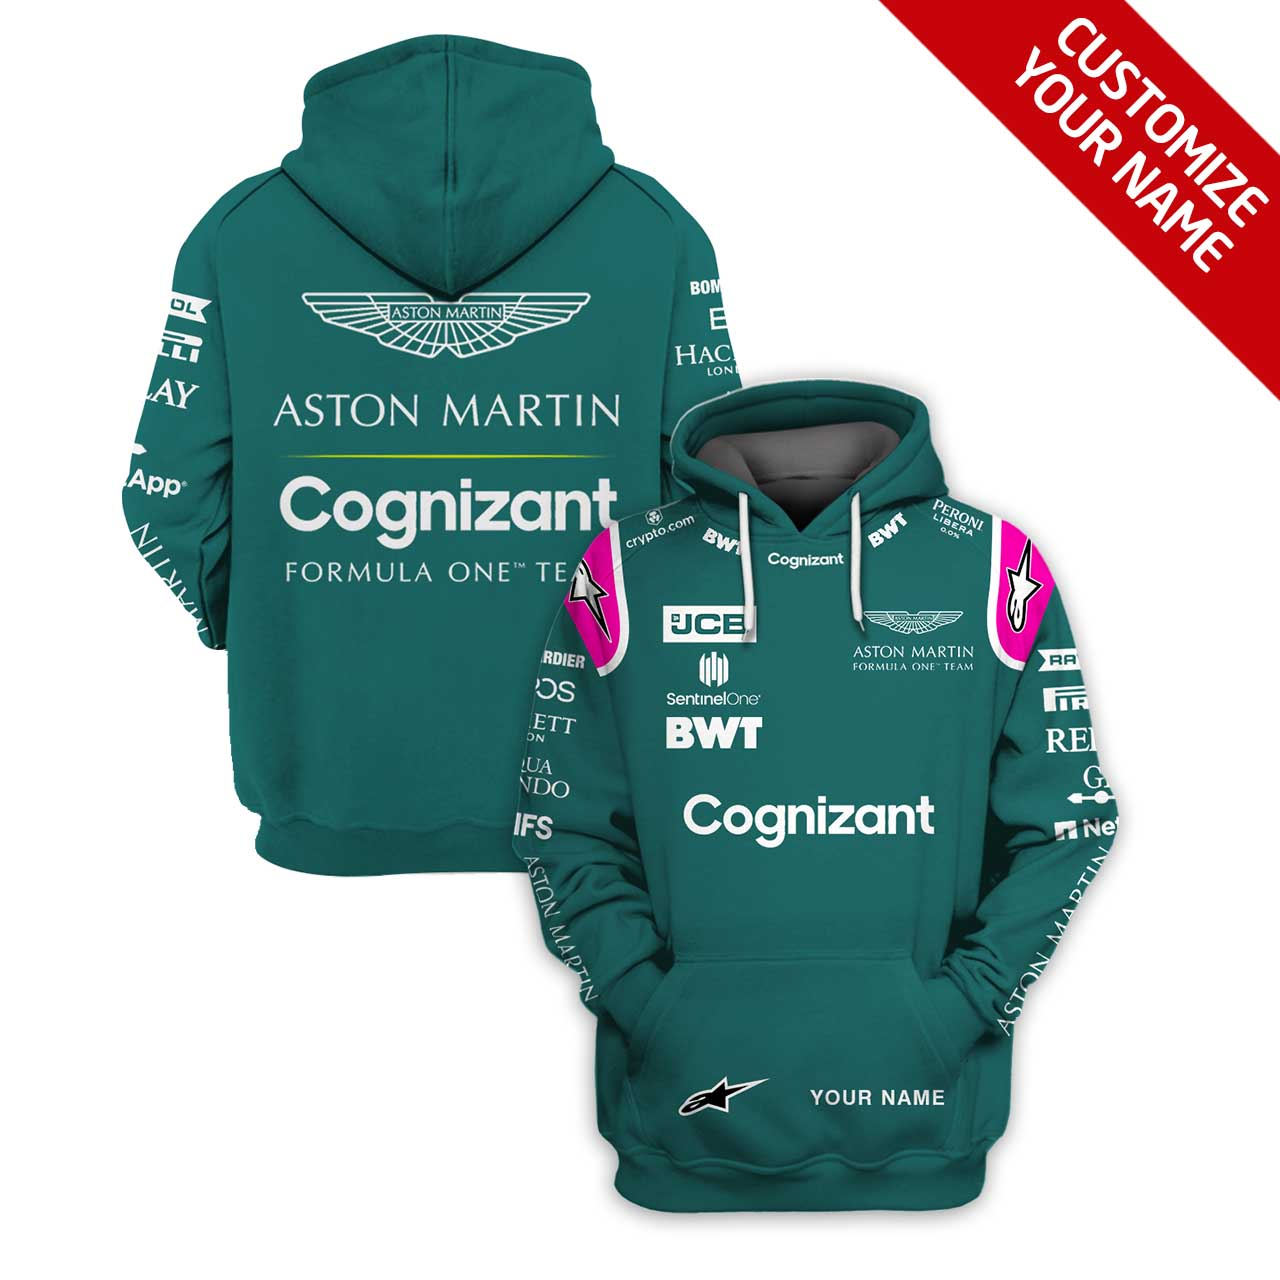 Personalized Aston Martin Cognizant Formula One Team Racing 3D Full Printing Hoodie